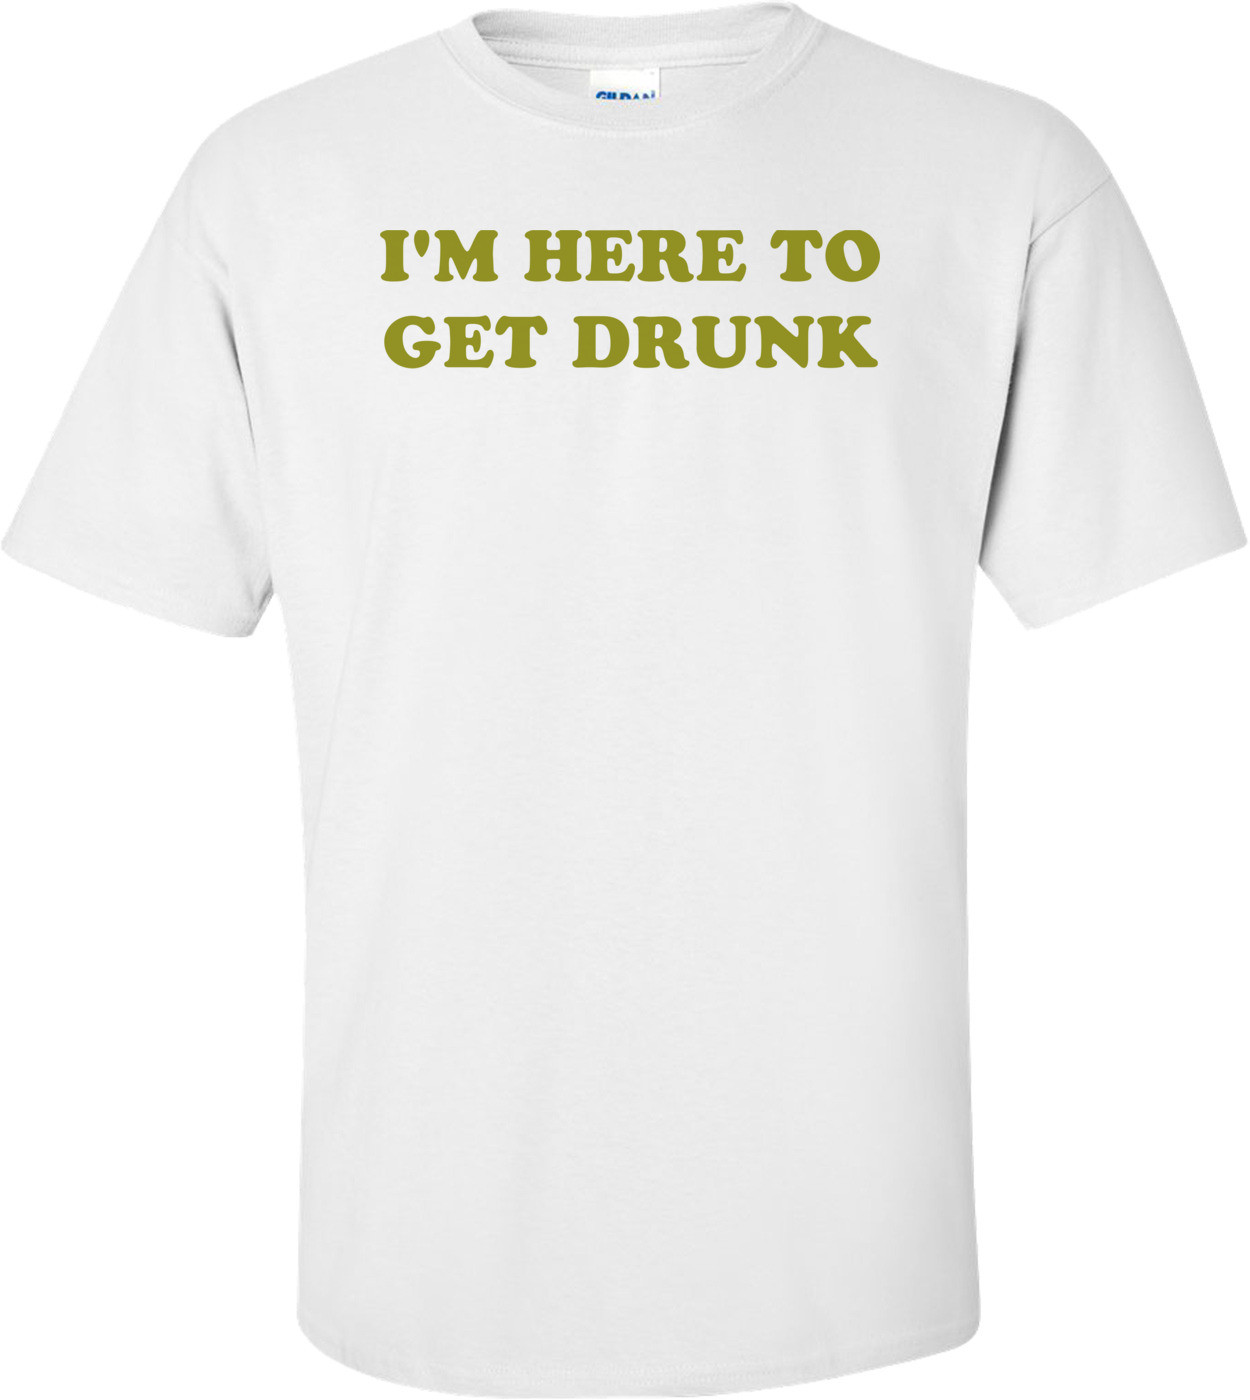 I'M HERE TO GET DRUNK Shirt